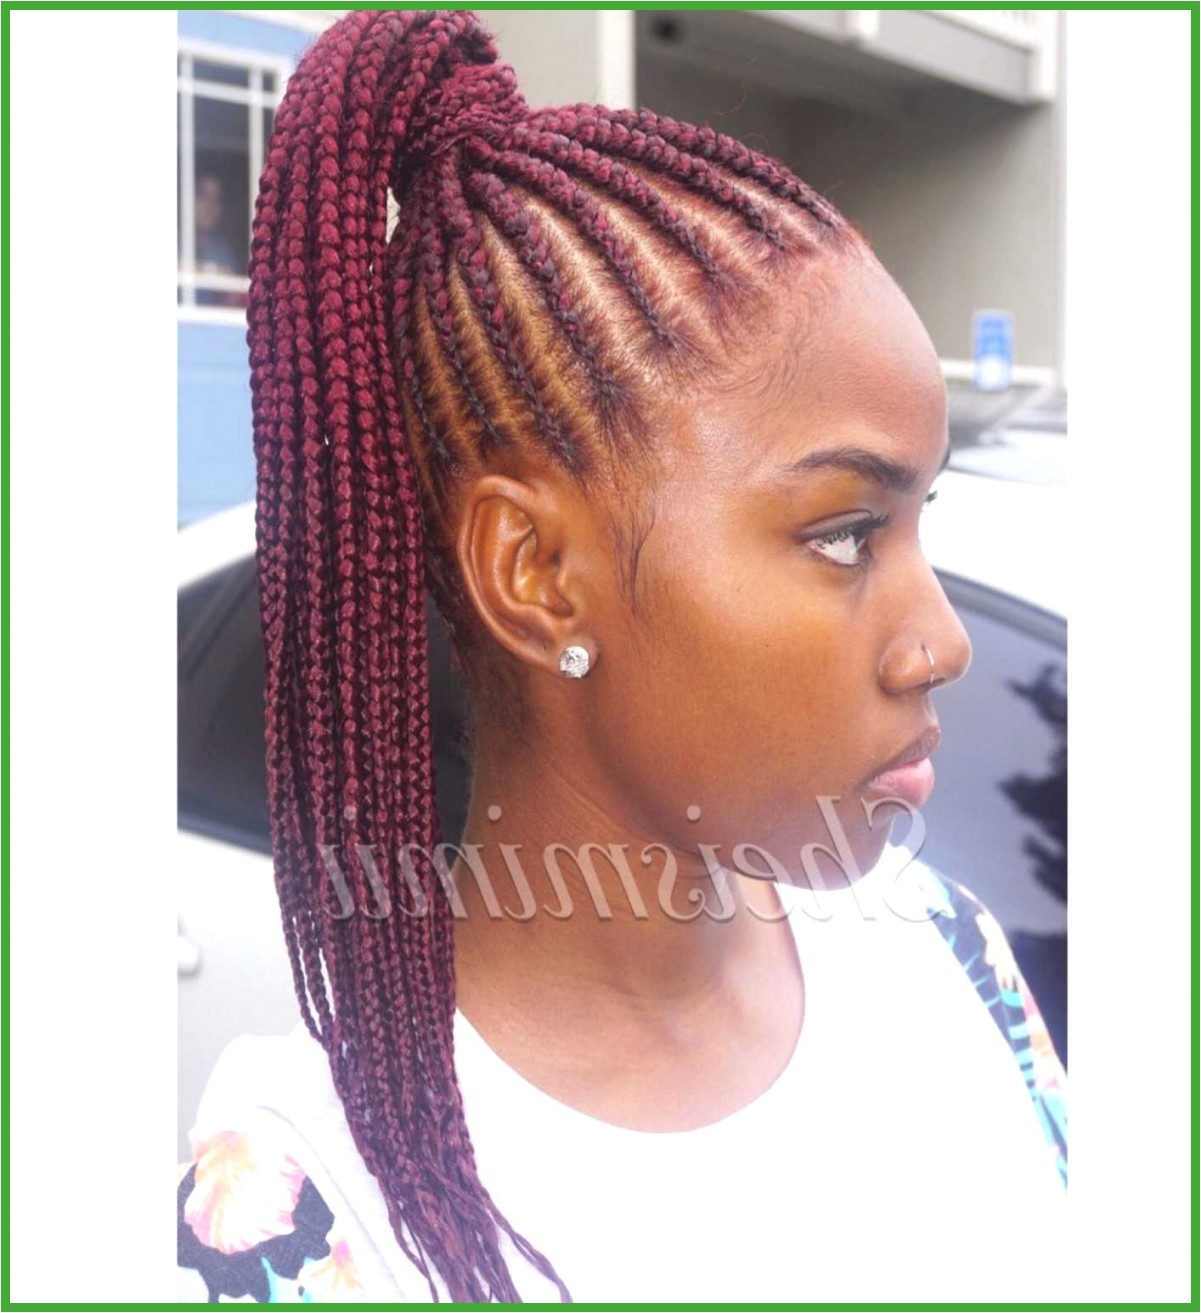 Lovely Nice Hairstyles for Little Girls Hairstyles with Braids Best Big Braids Hairstyles Fresh Micro Hairstyles 0d Regrowhairproducts